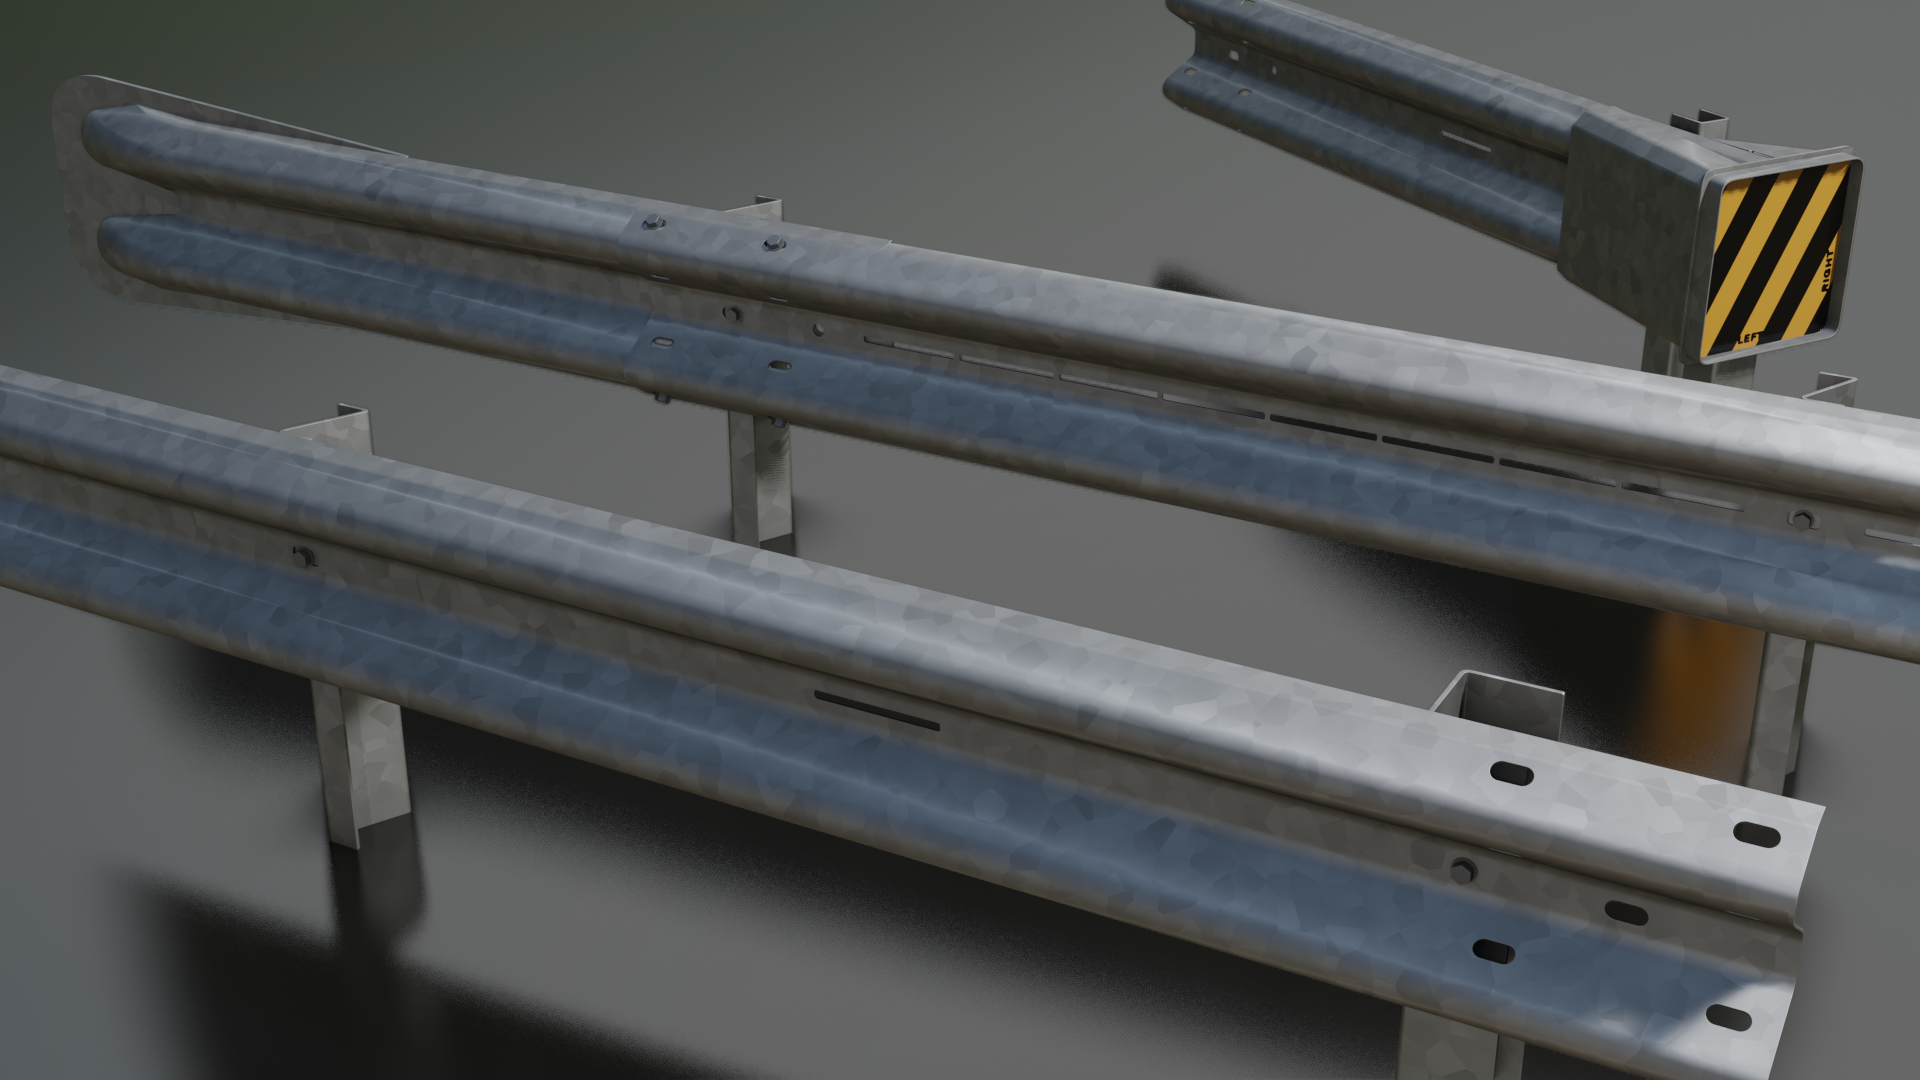 Armco barrier sections preview image 1